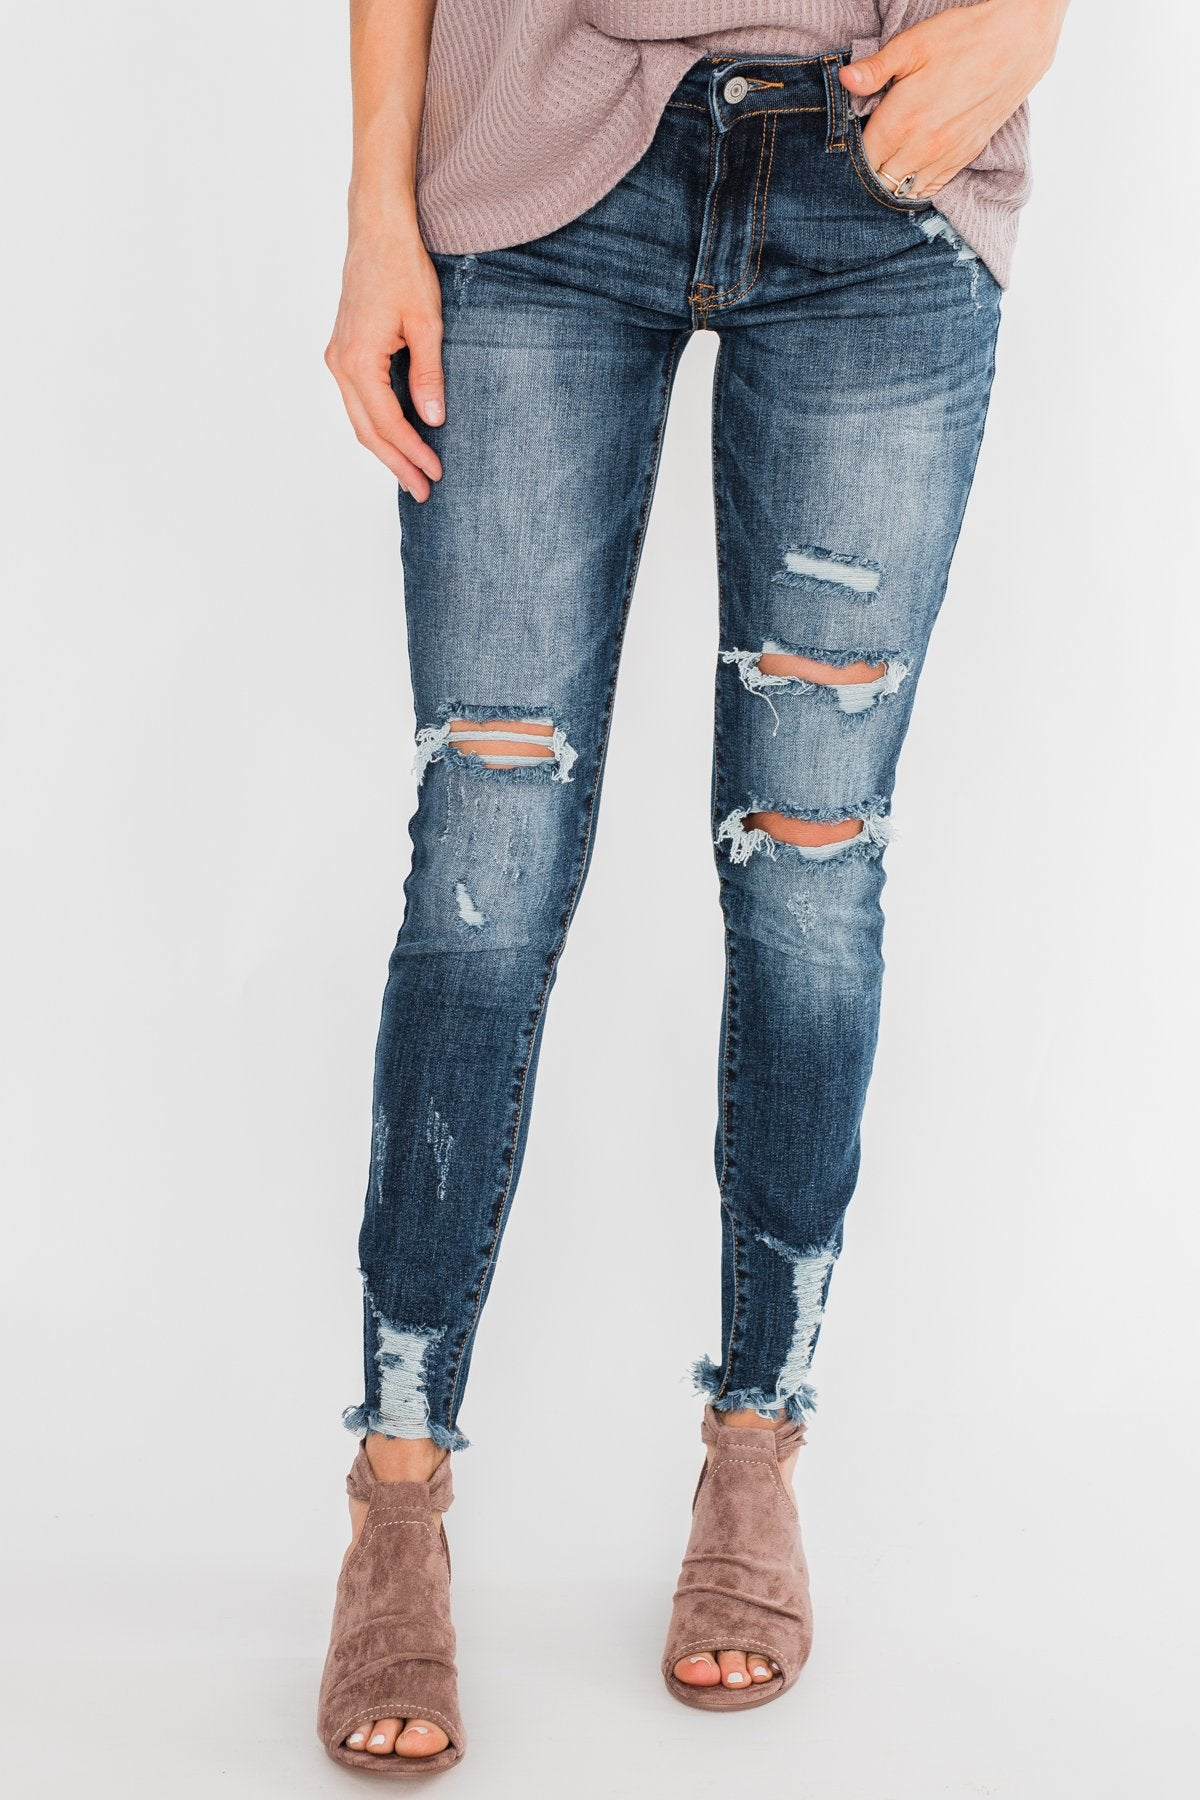 C'est Toi Distressed Skinny Jeans- Fiona Dark Wash